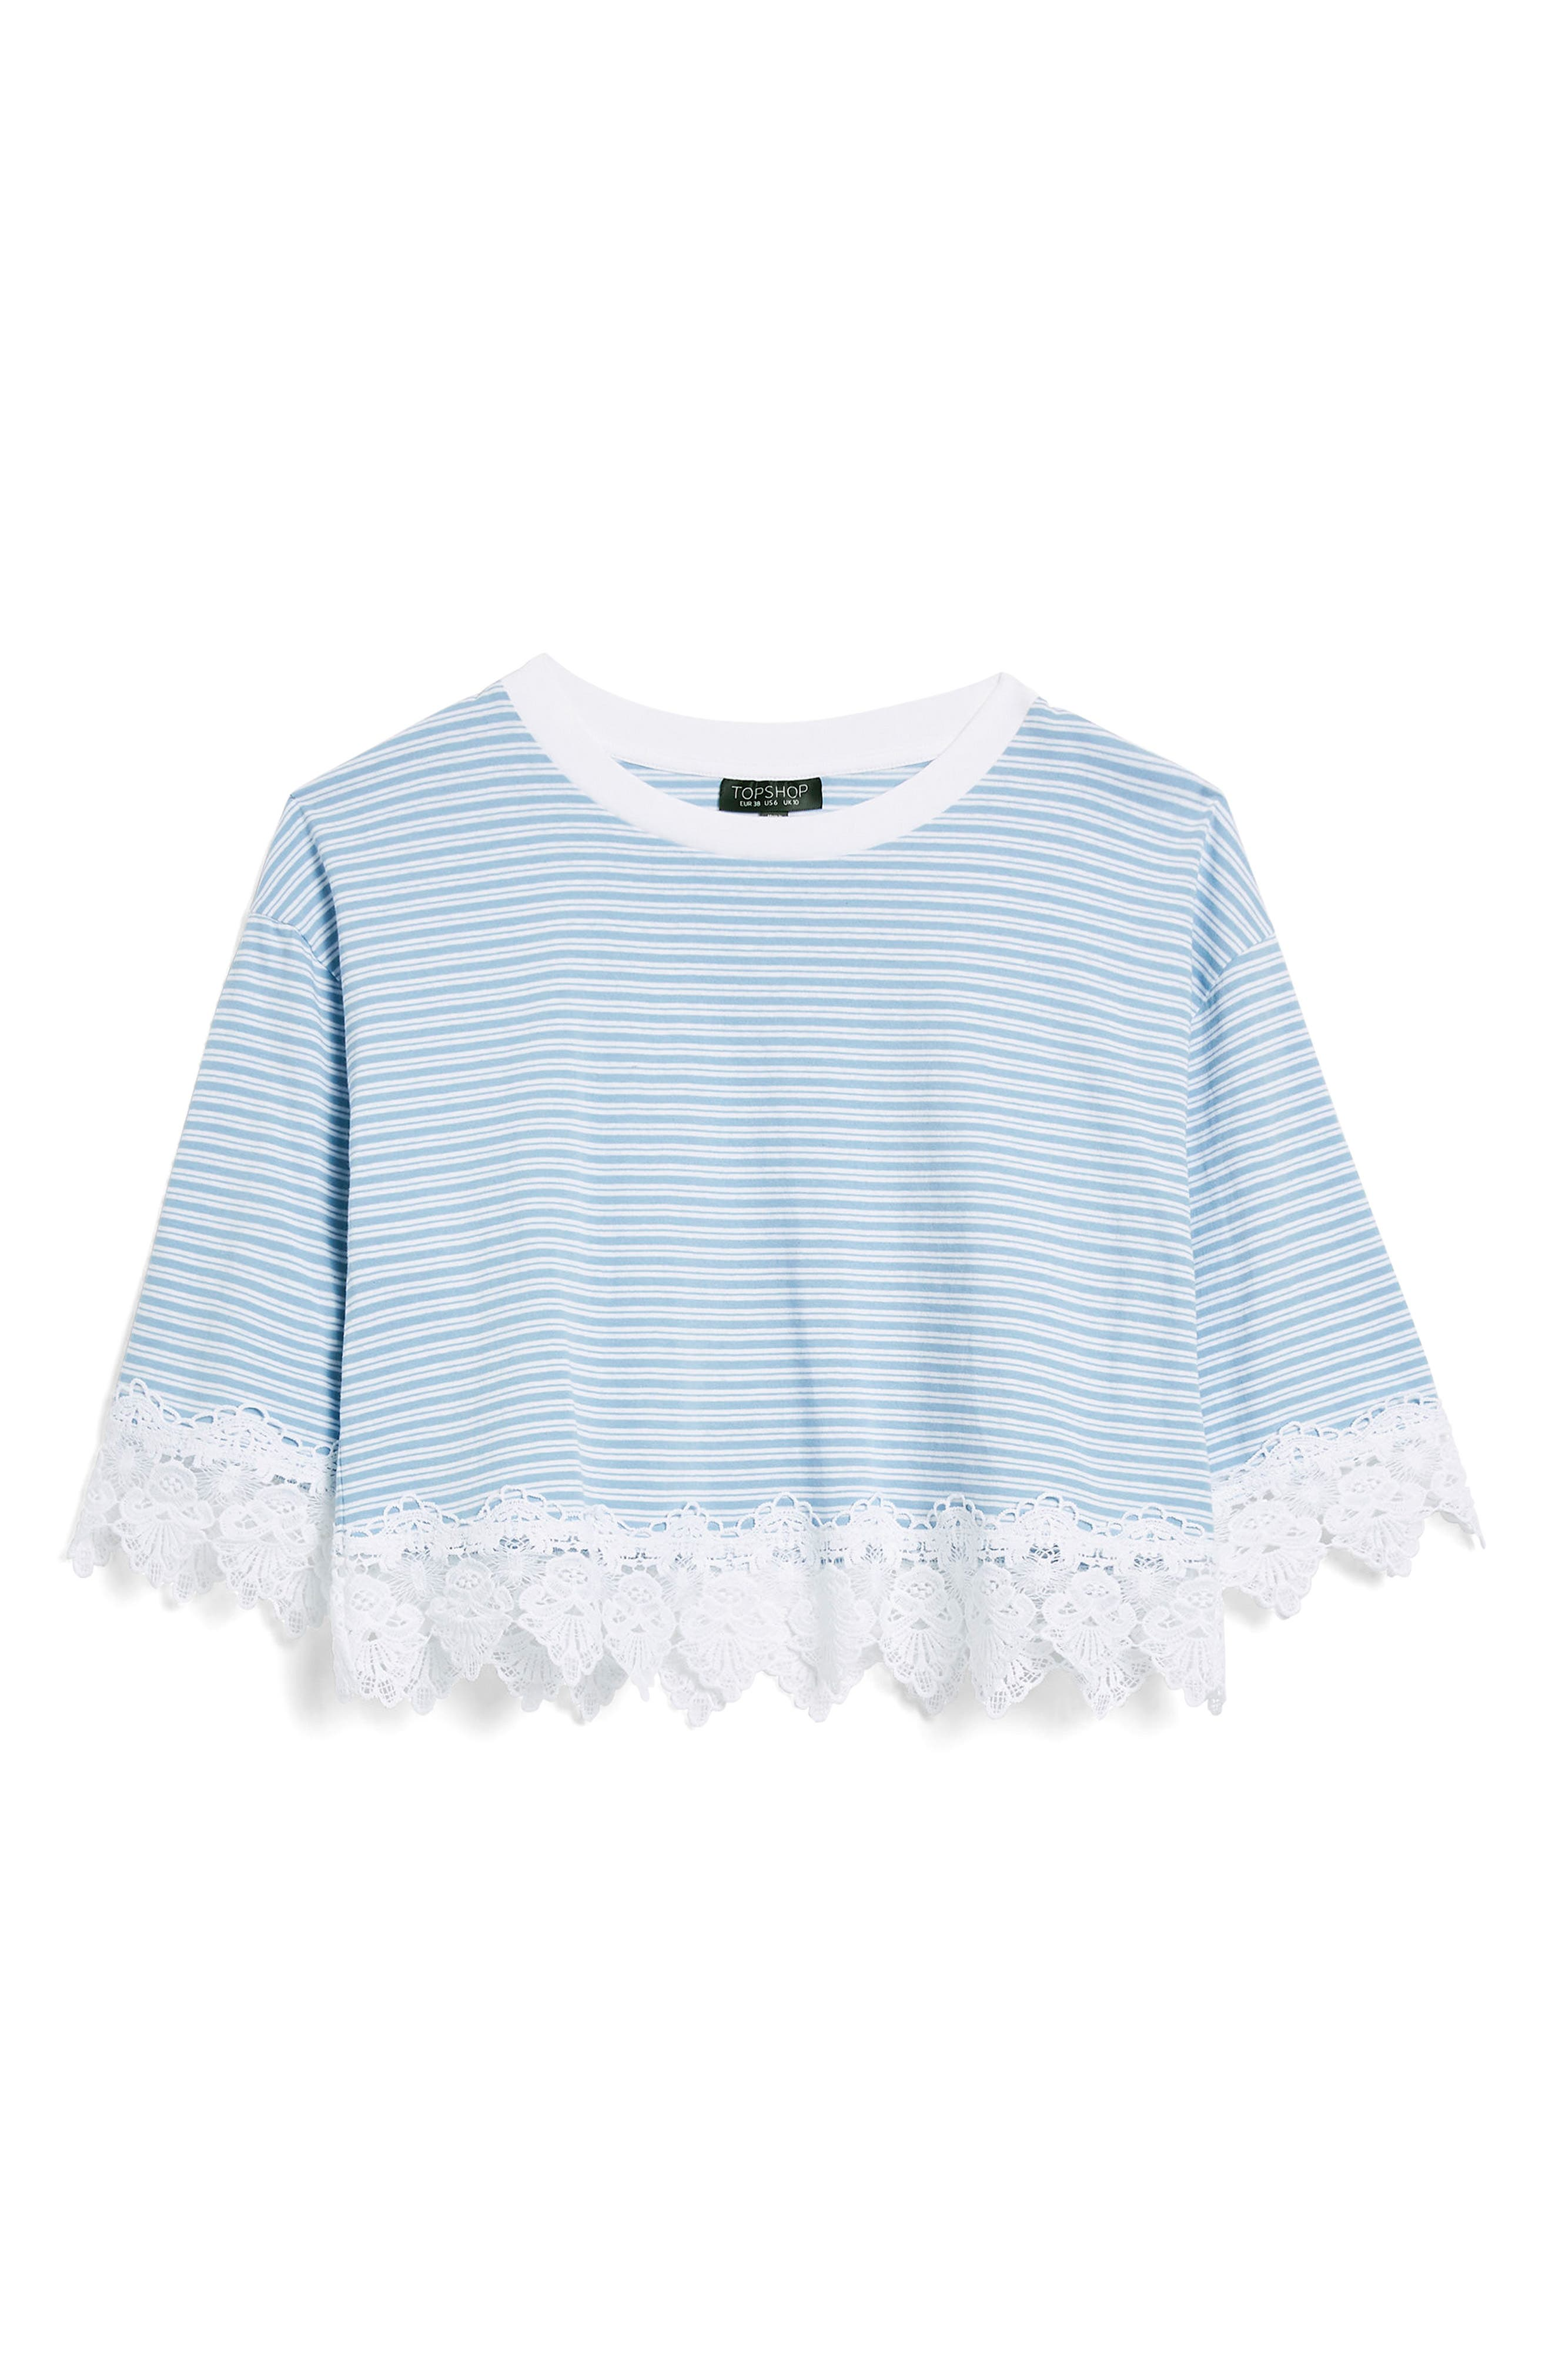 TOPSHOP,                             Stripe Lace Hem Crop Shirt,                             Alternate thumbnail 3, color,                             400